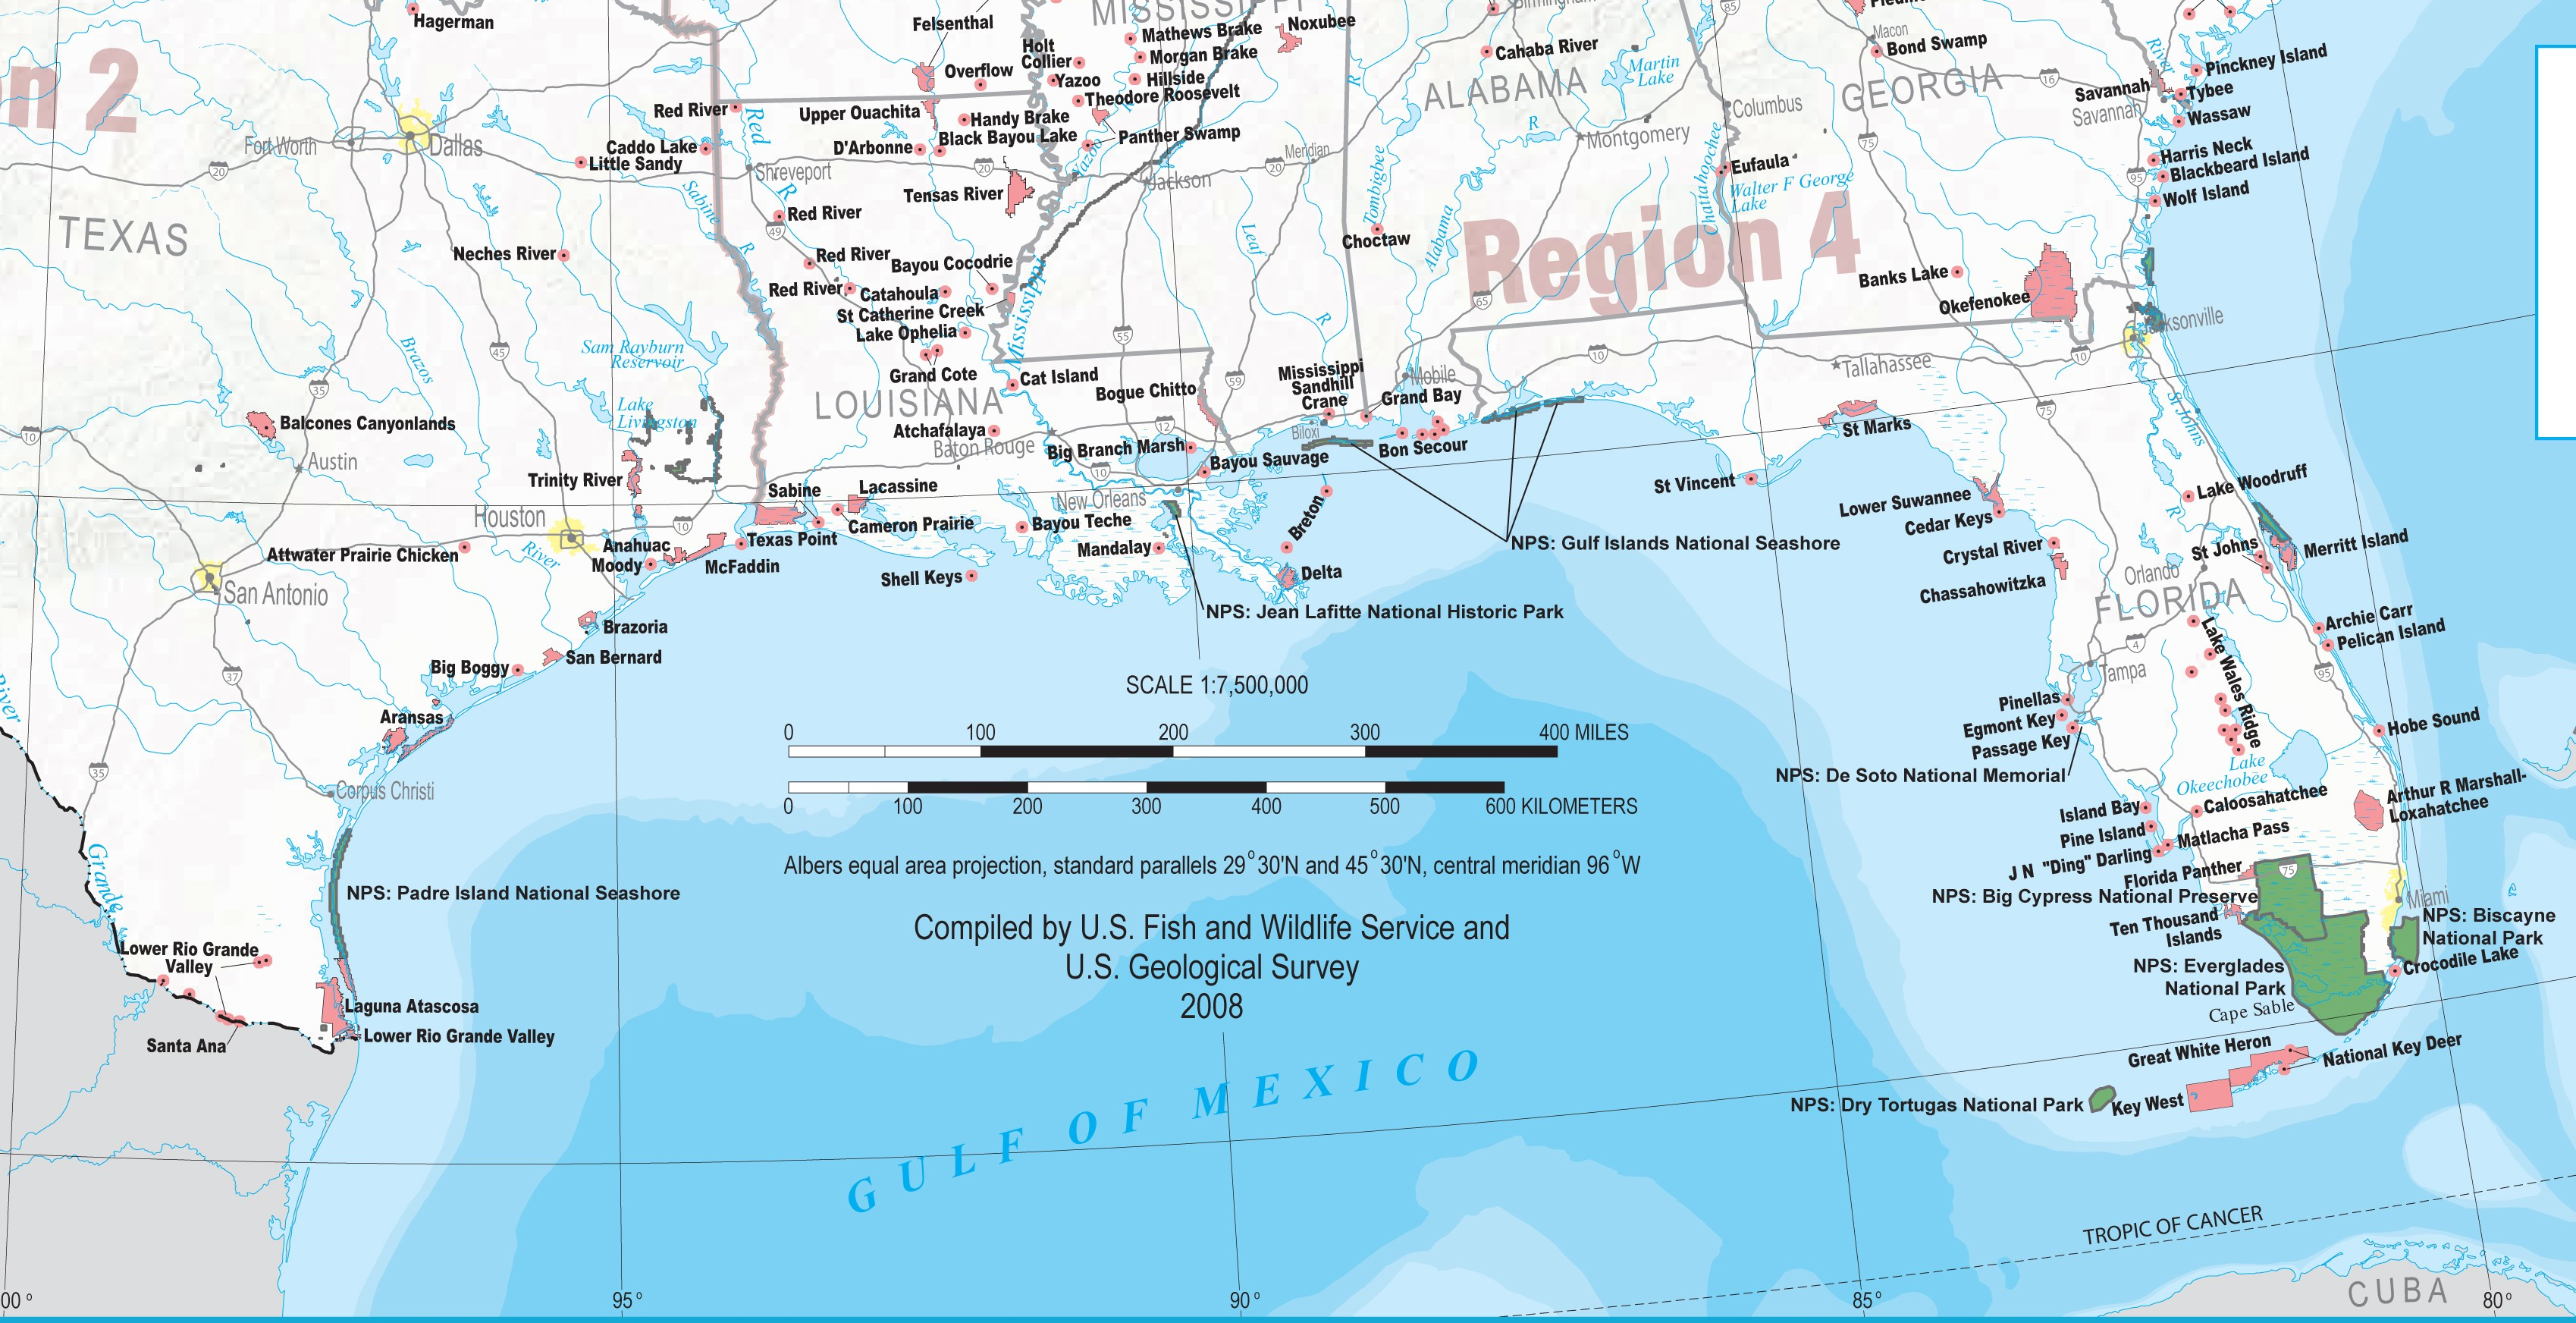 Map Of Gulf Coast Cities | Sitedesignco - Gulf Coast Cities In Florida Map